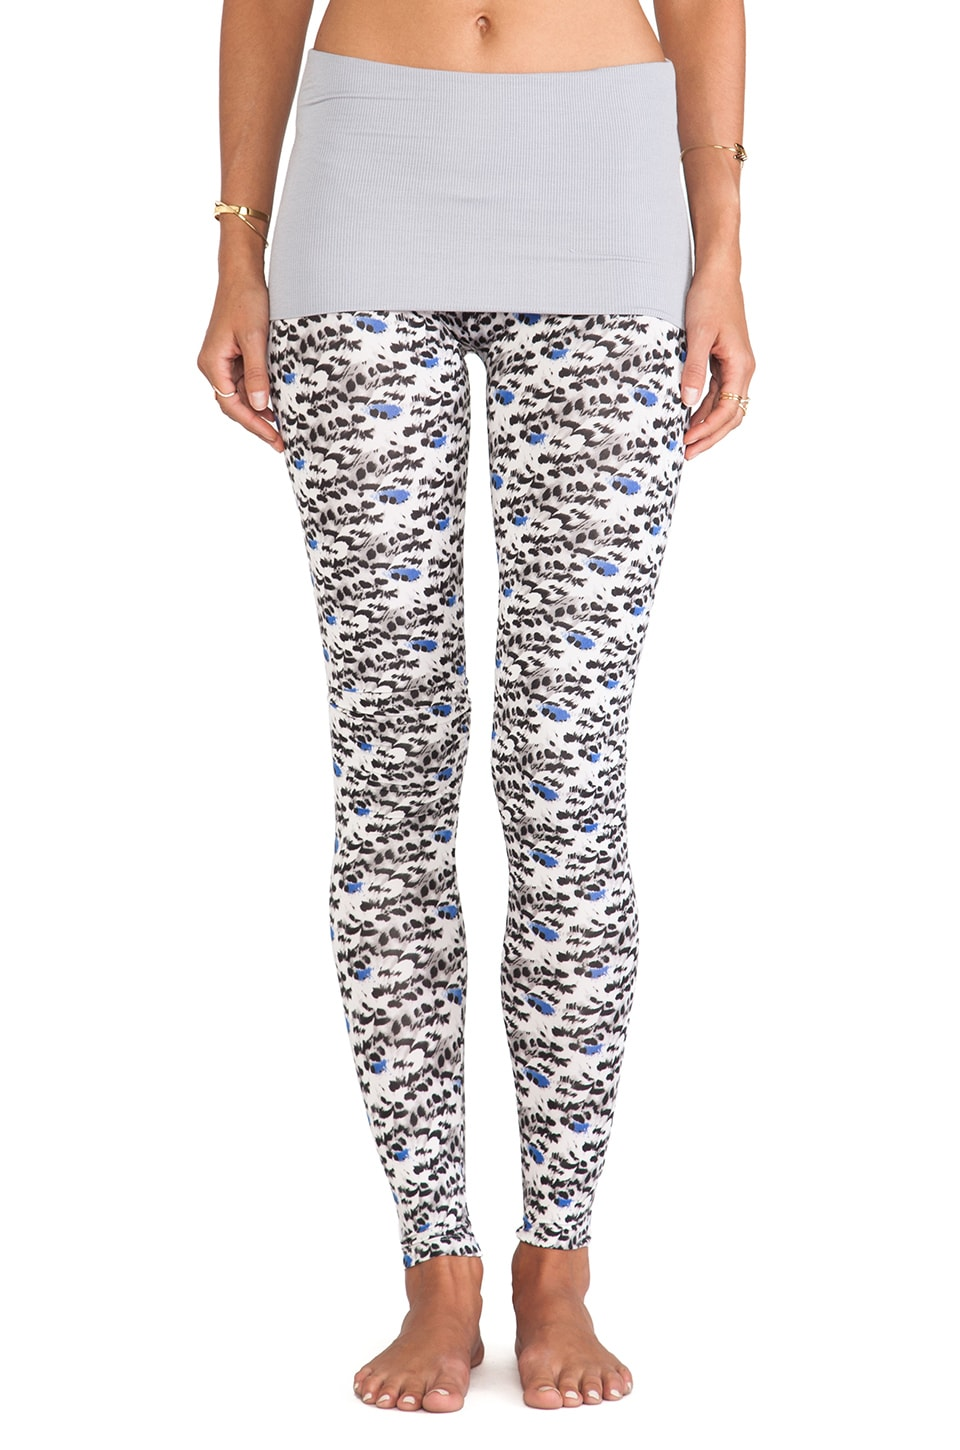 Love Haus by Beach Bunny Aggressive Pant in Leopard